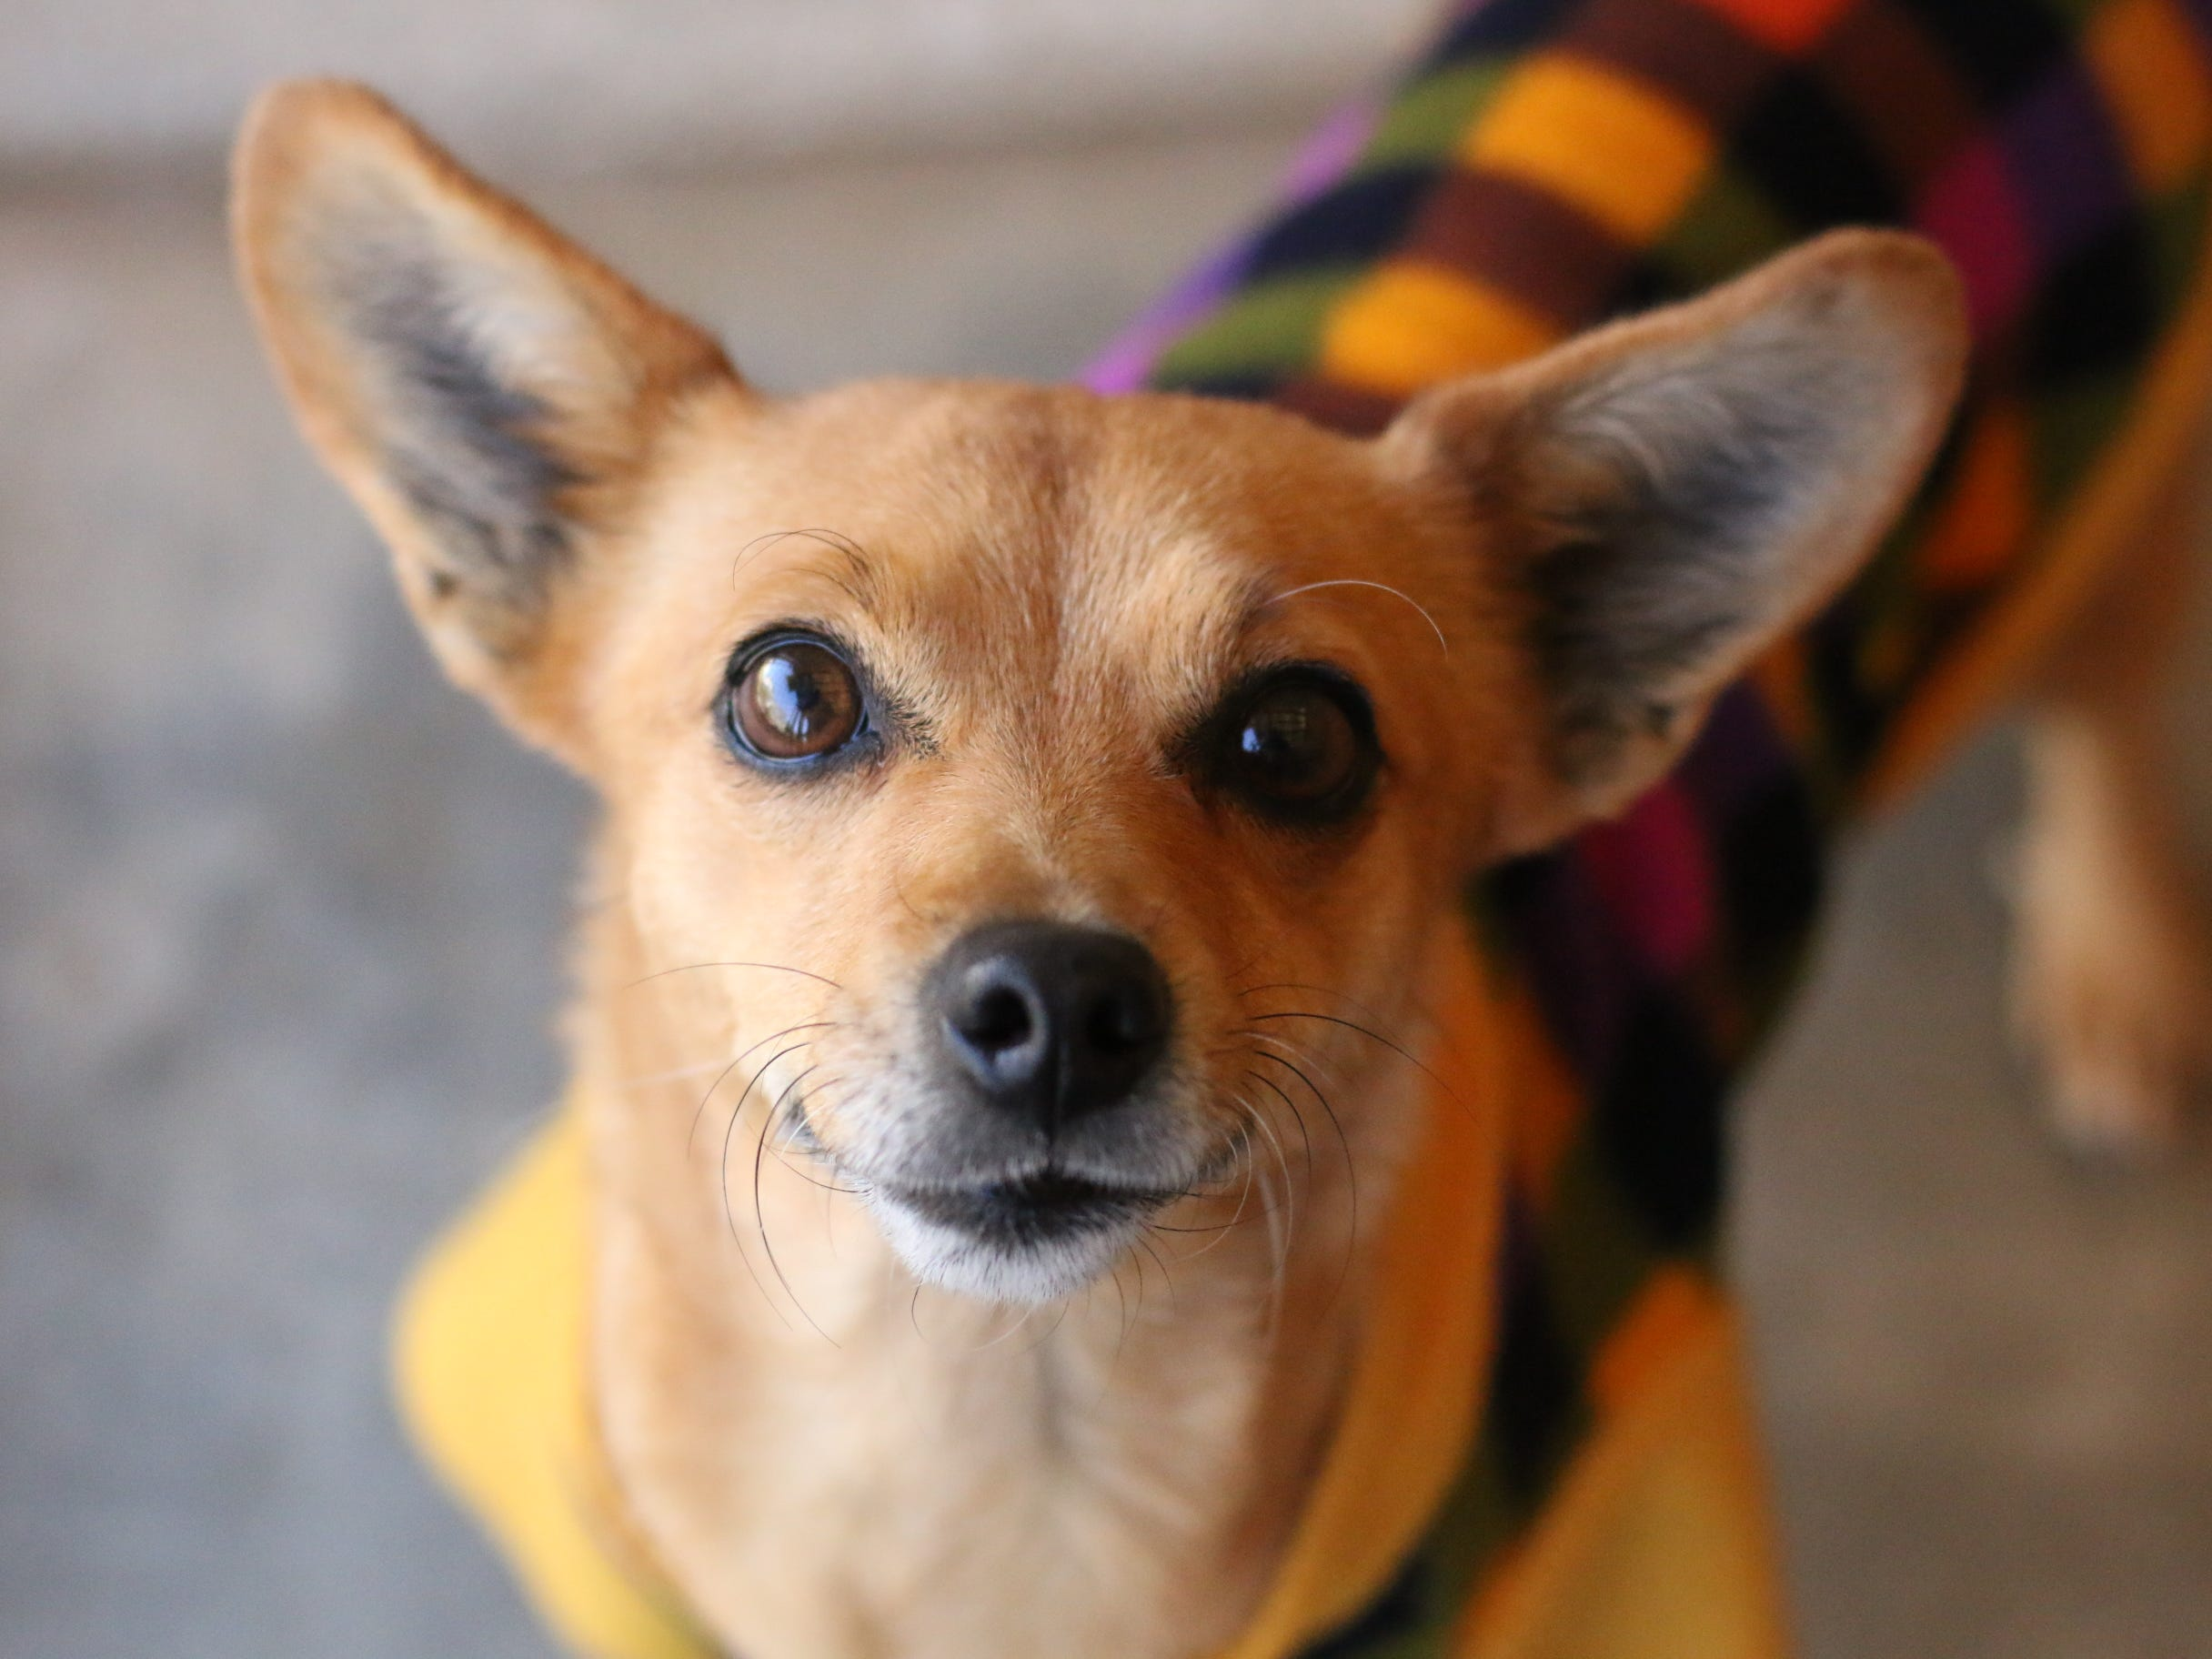 Joanna is a little Chihuahua mix, about 4 years old. We don't know her history, but she is a funny, playful little dog. Joanna is spayed. She should be an only pet in a home with no small children. You can meet Joanna at the Humane Society of Ventura County in Ojai. Her adoption fee of $120 includes sterilization, vaccinations, microchip implantation, free veterinarian visit, ID tag and a fun new family member. For more information on Joanna or other available animals, or to volunteer, please call 805-646-6505 or visit www.hsvc.org. The shelter is located at 402 Bryant St., Ojai. Hours are 10 a.m. to 5 p.m. Monday through Saturday. The shelter can also provide information about help with animal evacuations during storms.